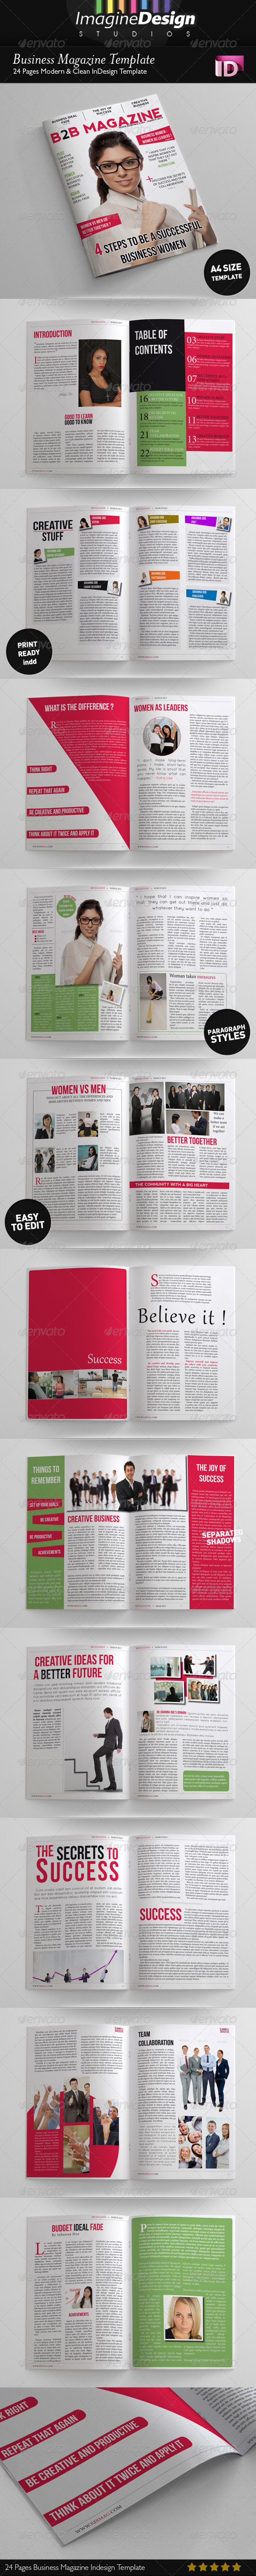 GraphicRiver 24 Pages Business Magazine Template 3728159